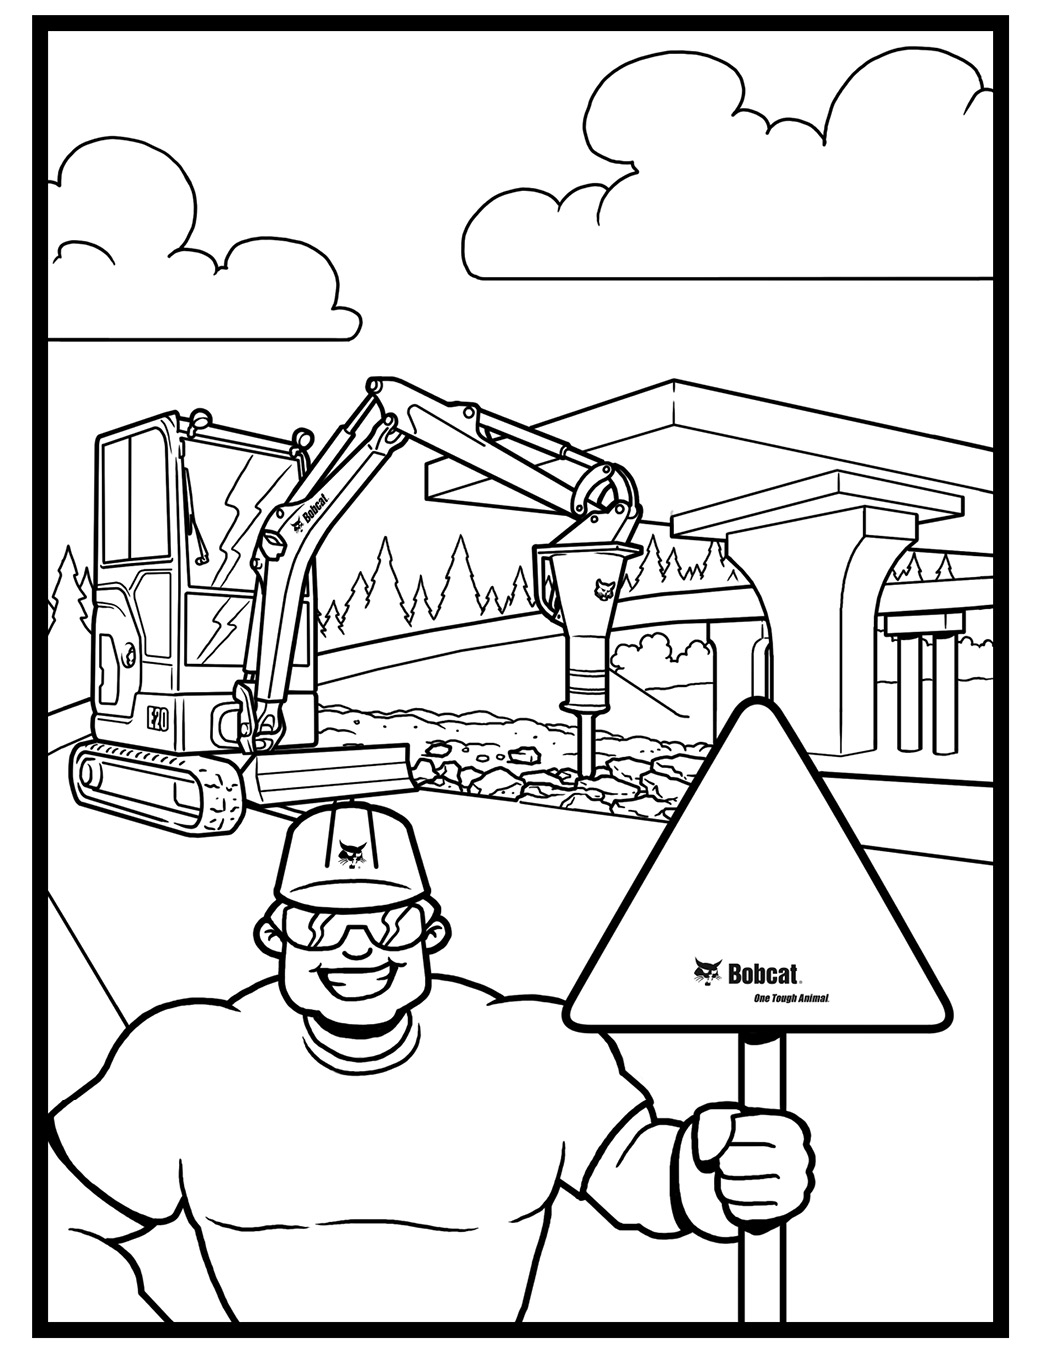 Maintenance Equipment Operator Jobs Coloring Pages